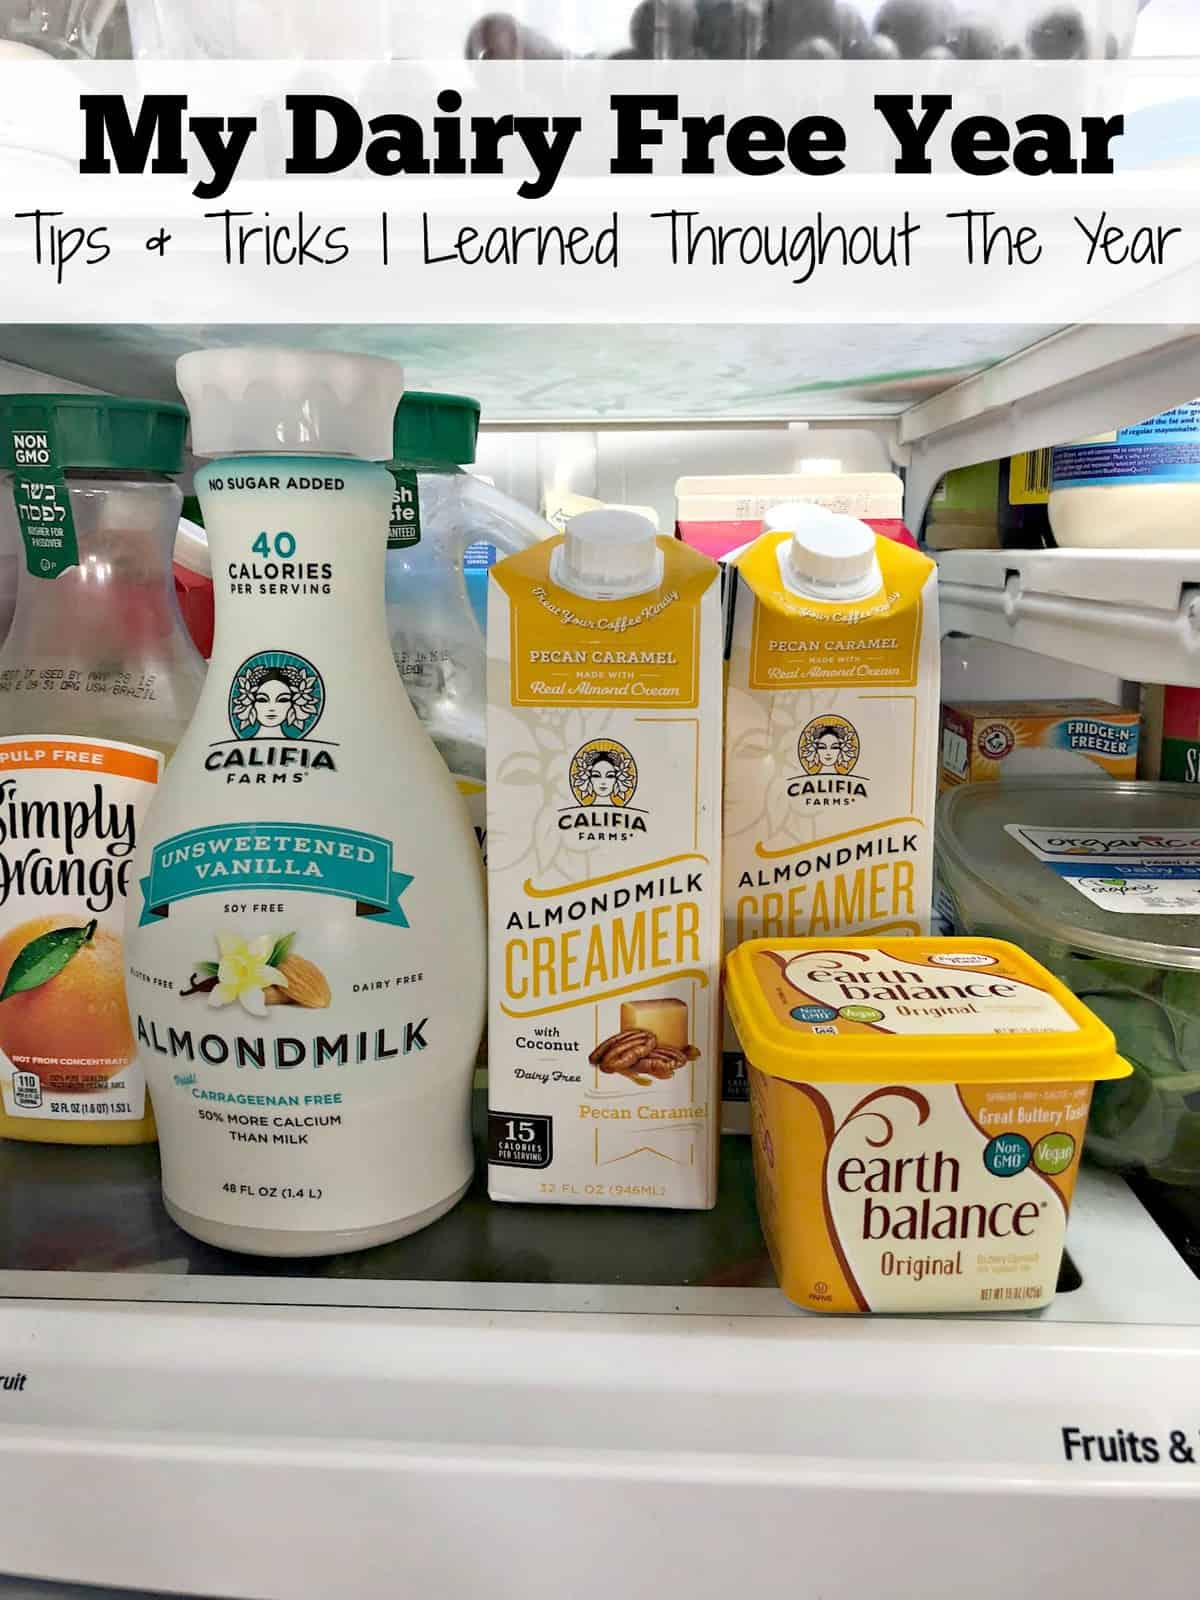 Califia farms Almondmilk, creamer and earth balance non-dairy butter inside fridge on shelf with title text.